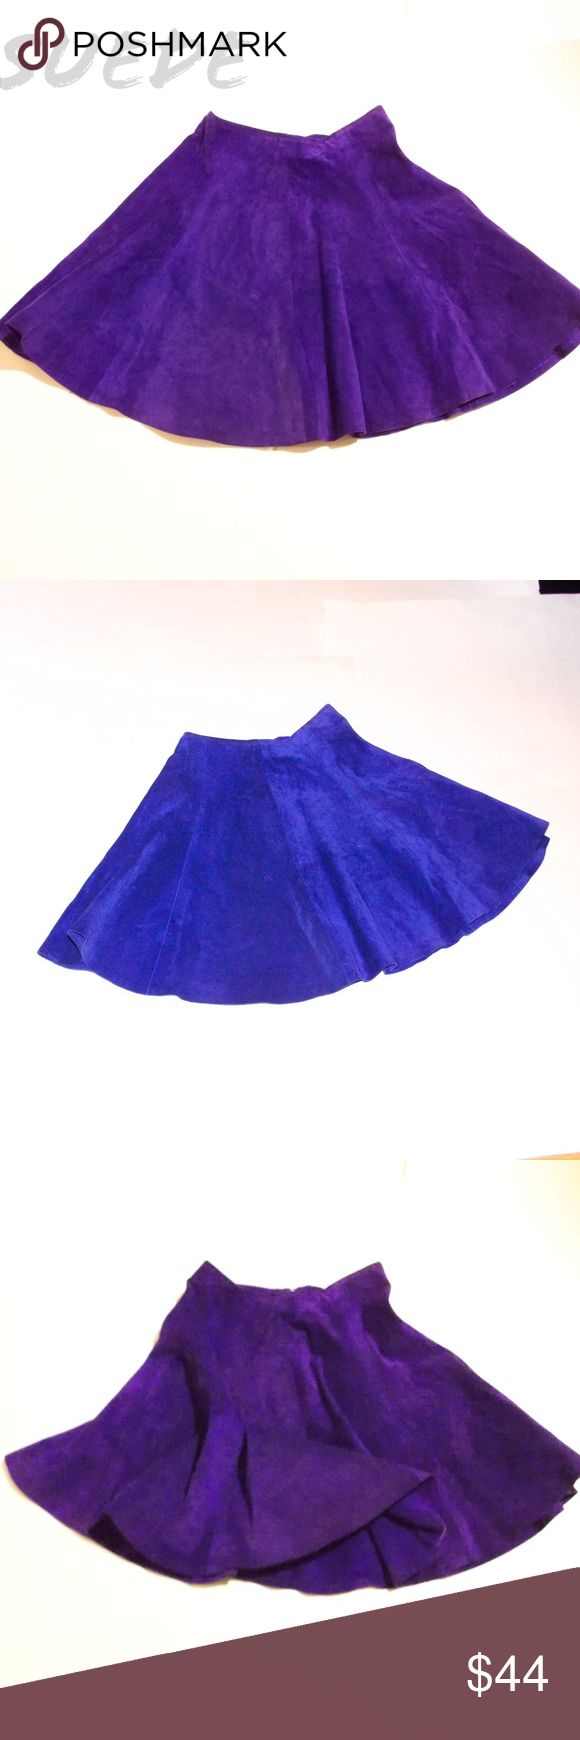 Vintage Leather Mini Skirt Goth Rocker Glam Boho Firenze Santa Barbara Vintage 80s SUEDE leather fit and flare mini cheerleader punk skater skirt in bright purple! Purchased new by me in the 80s and worn a few times, but mostly stored.  Soft and flirty, this is a substantial suede, unlined, Very good vintage condition and perfect for layering over petticoats, slips, tights etc.  Some photos show the color as a cobalt blue - deep vibrant grape PURPLE is the color.  VERY figure flattering and…